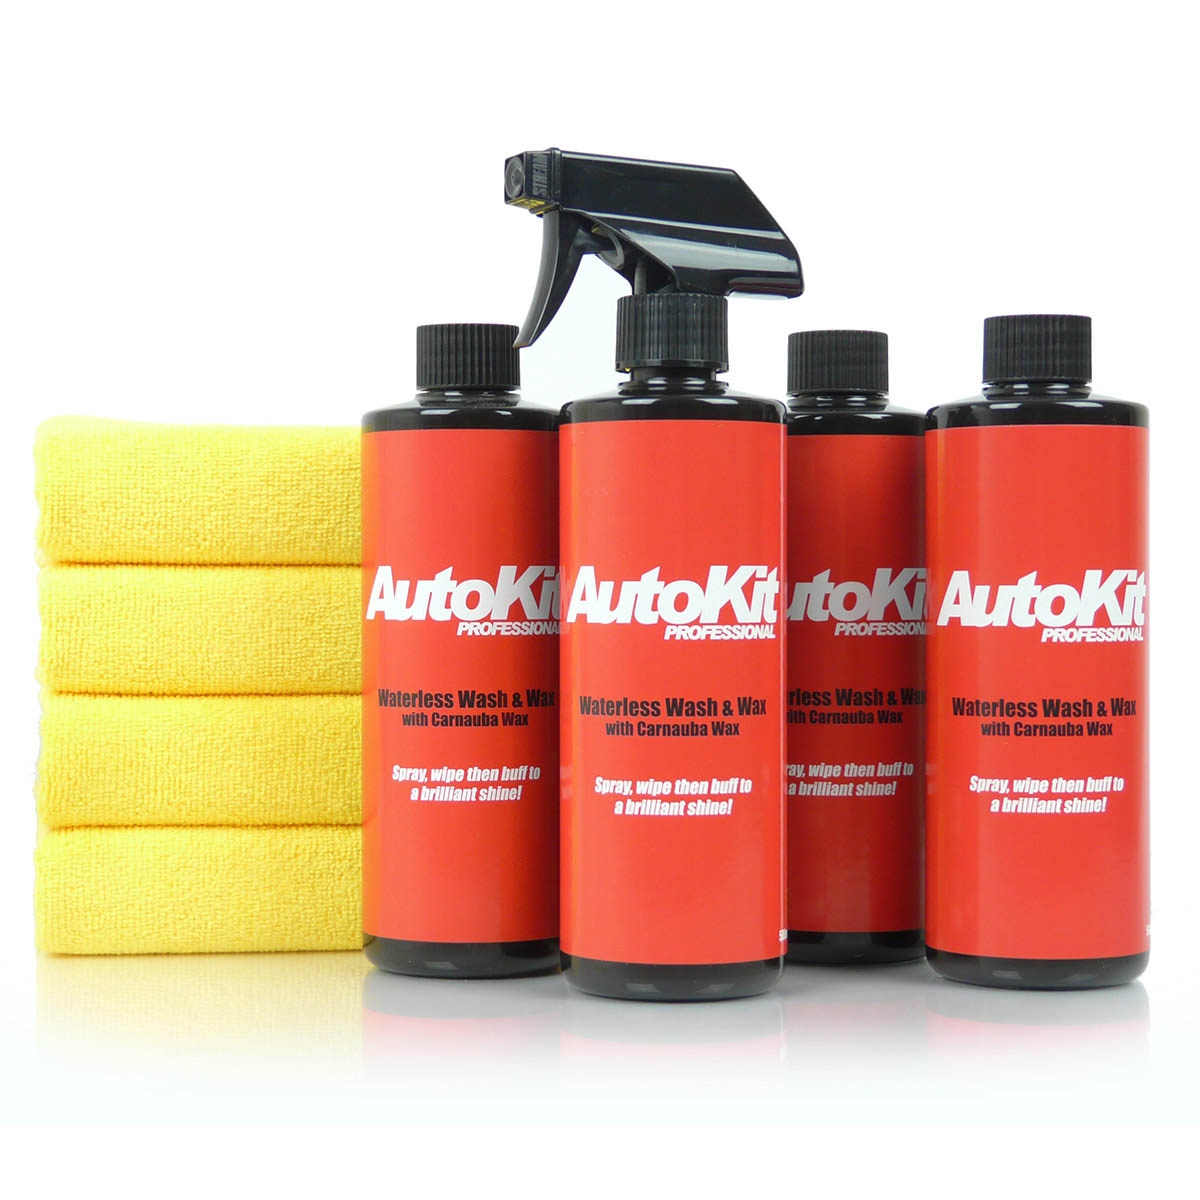 AutoKit Waterless Wash and Wax - 2L Kit